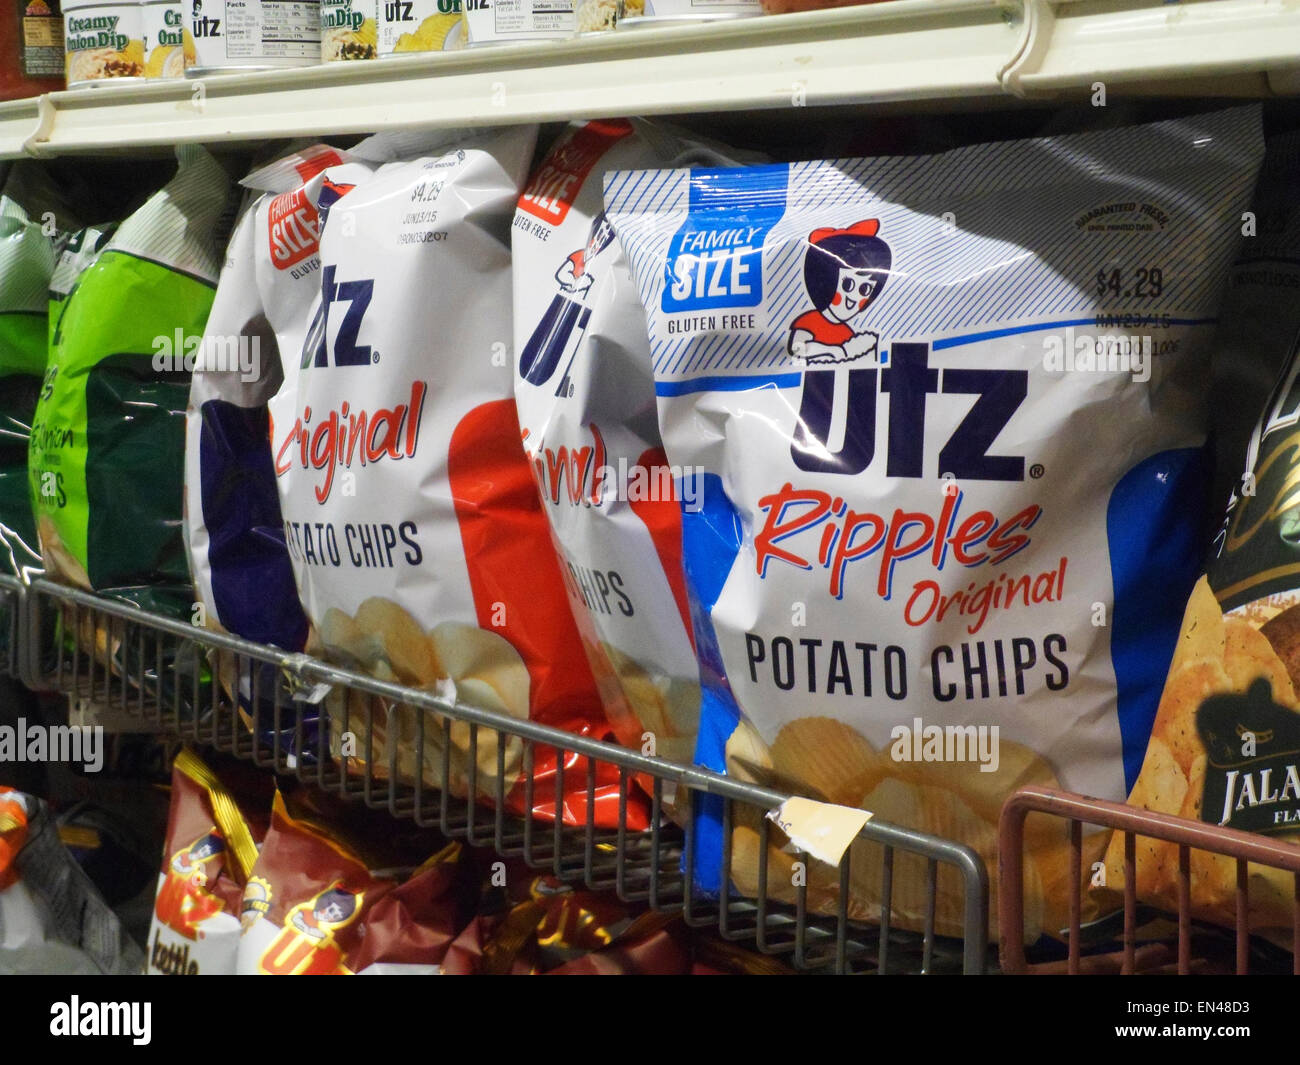 A display of Utz brand potato chips are seen in a